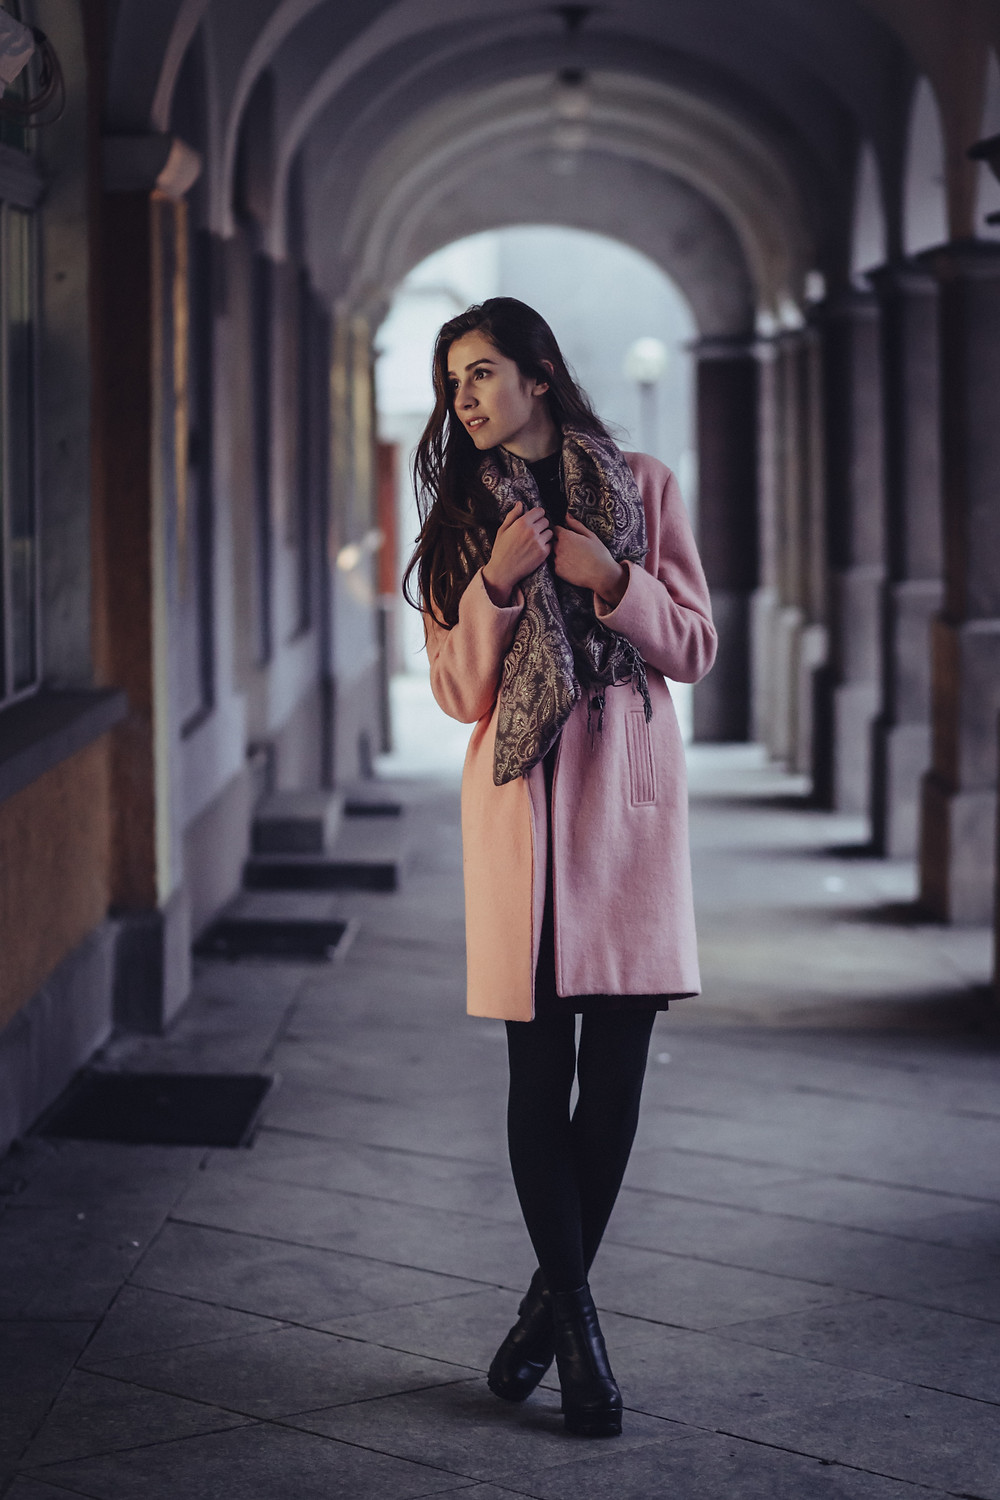 fashion chic paisley scarf outfit style